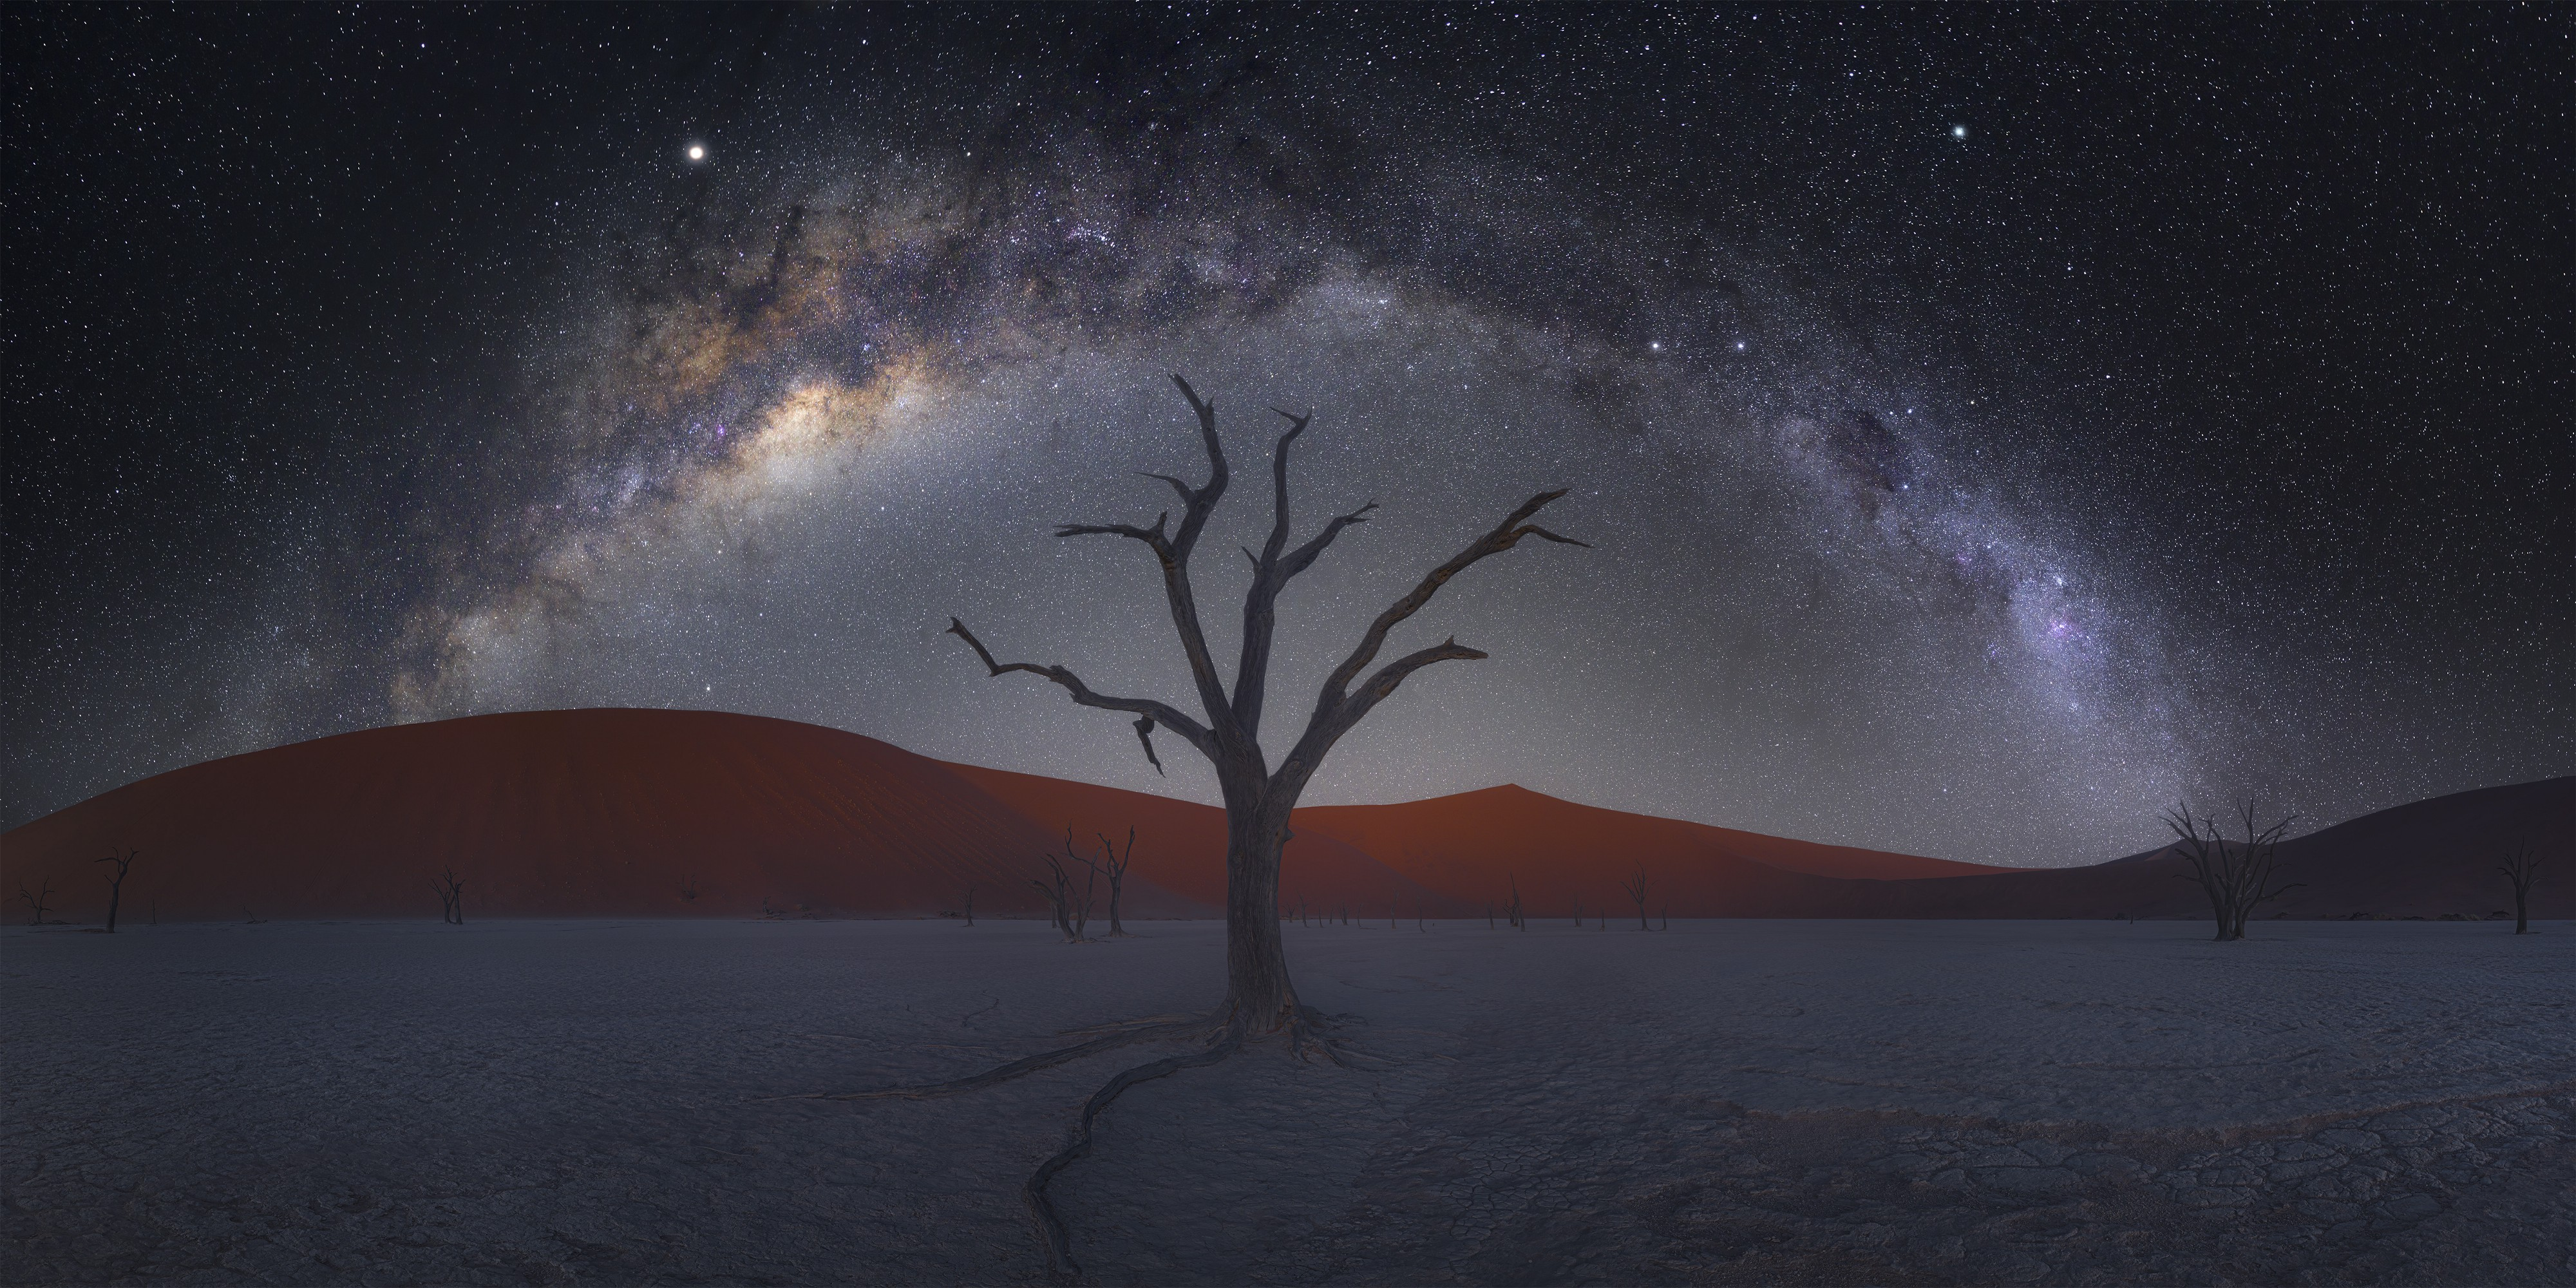 A fine art photograph of a bare tree on a desert landscape, crowned by a sky full of stars